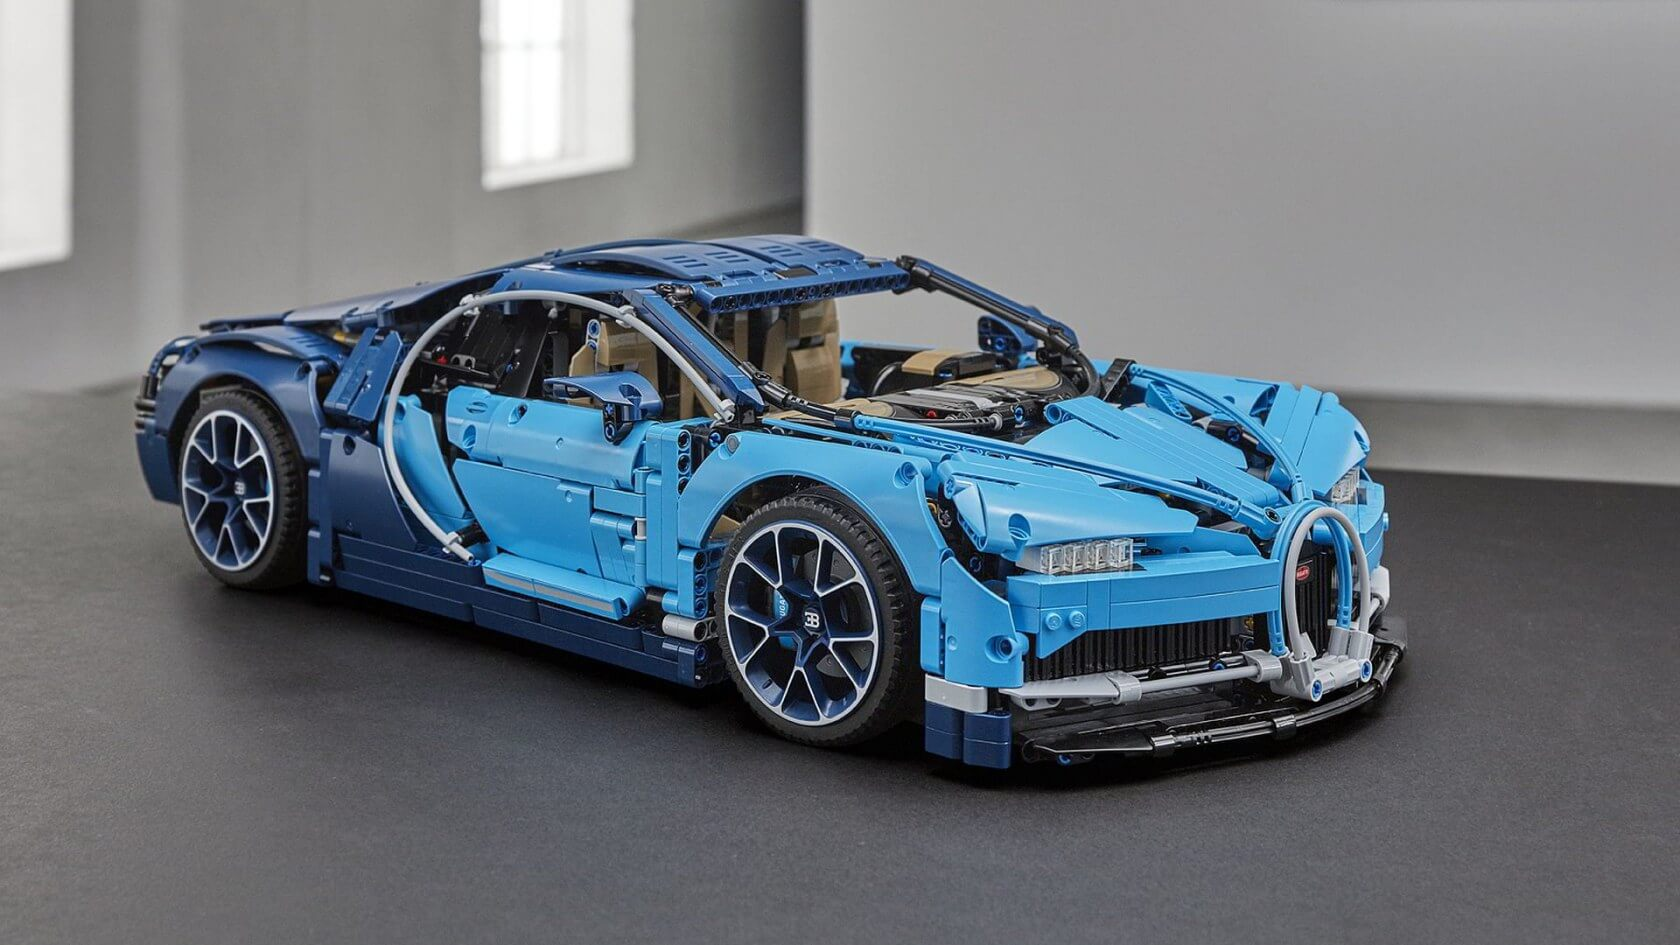 lego 39 s 1 8 bugatti chiron technic kit comes with 3599 pieces and moving parts techspot. Black Bedroom Furniture Sets. Home Design Ideas